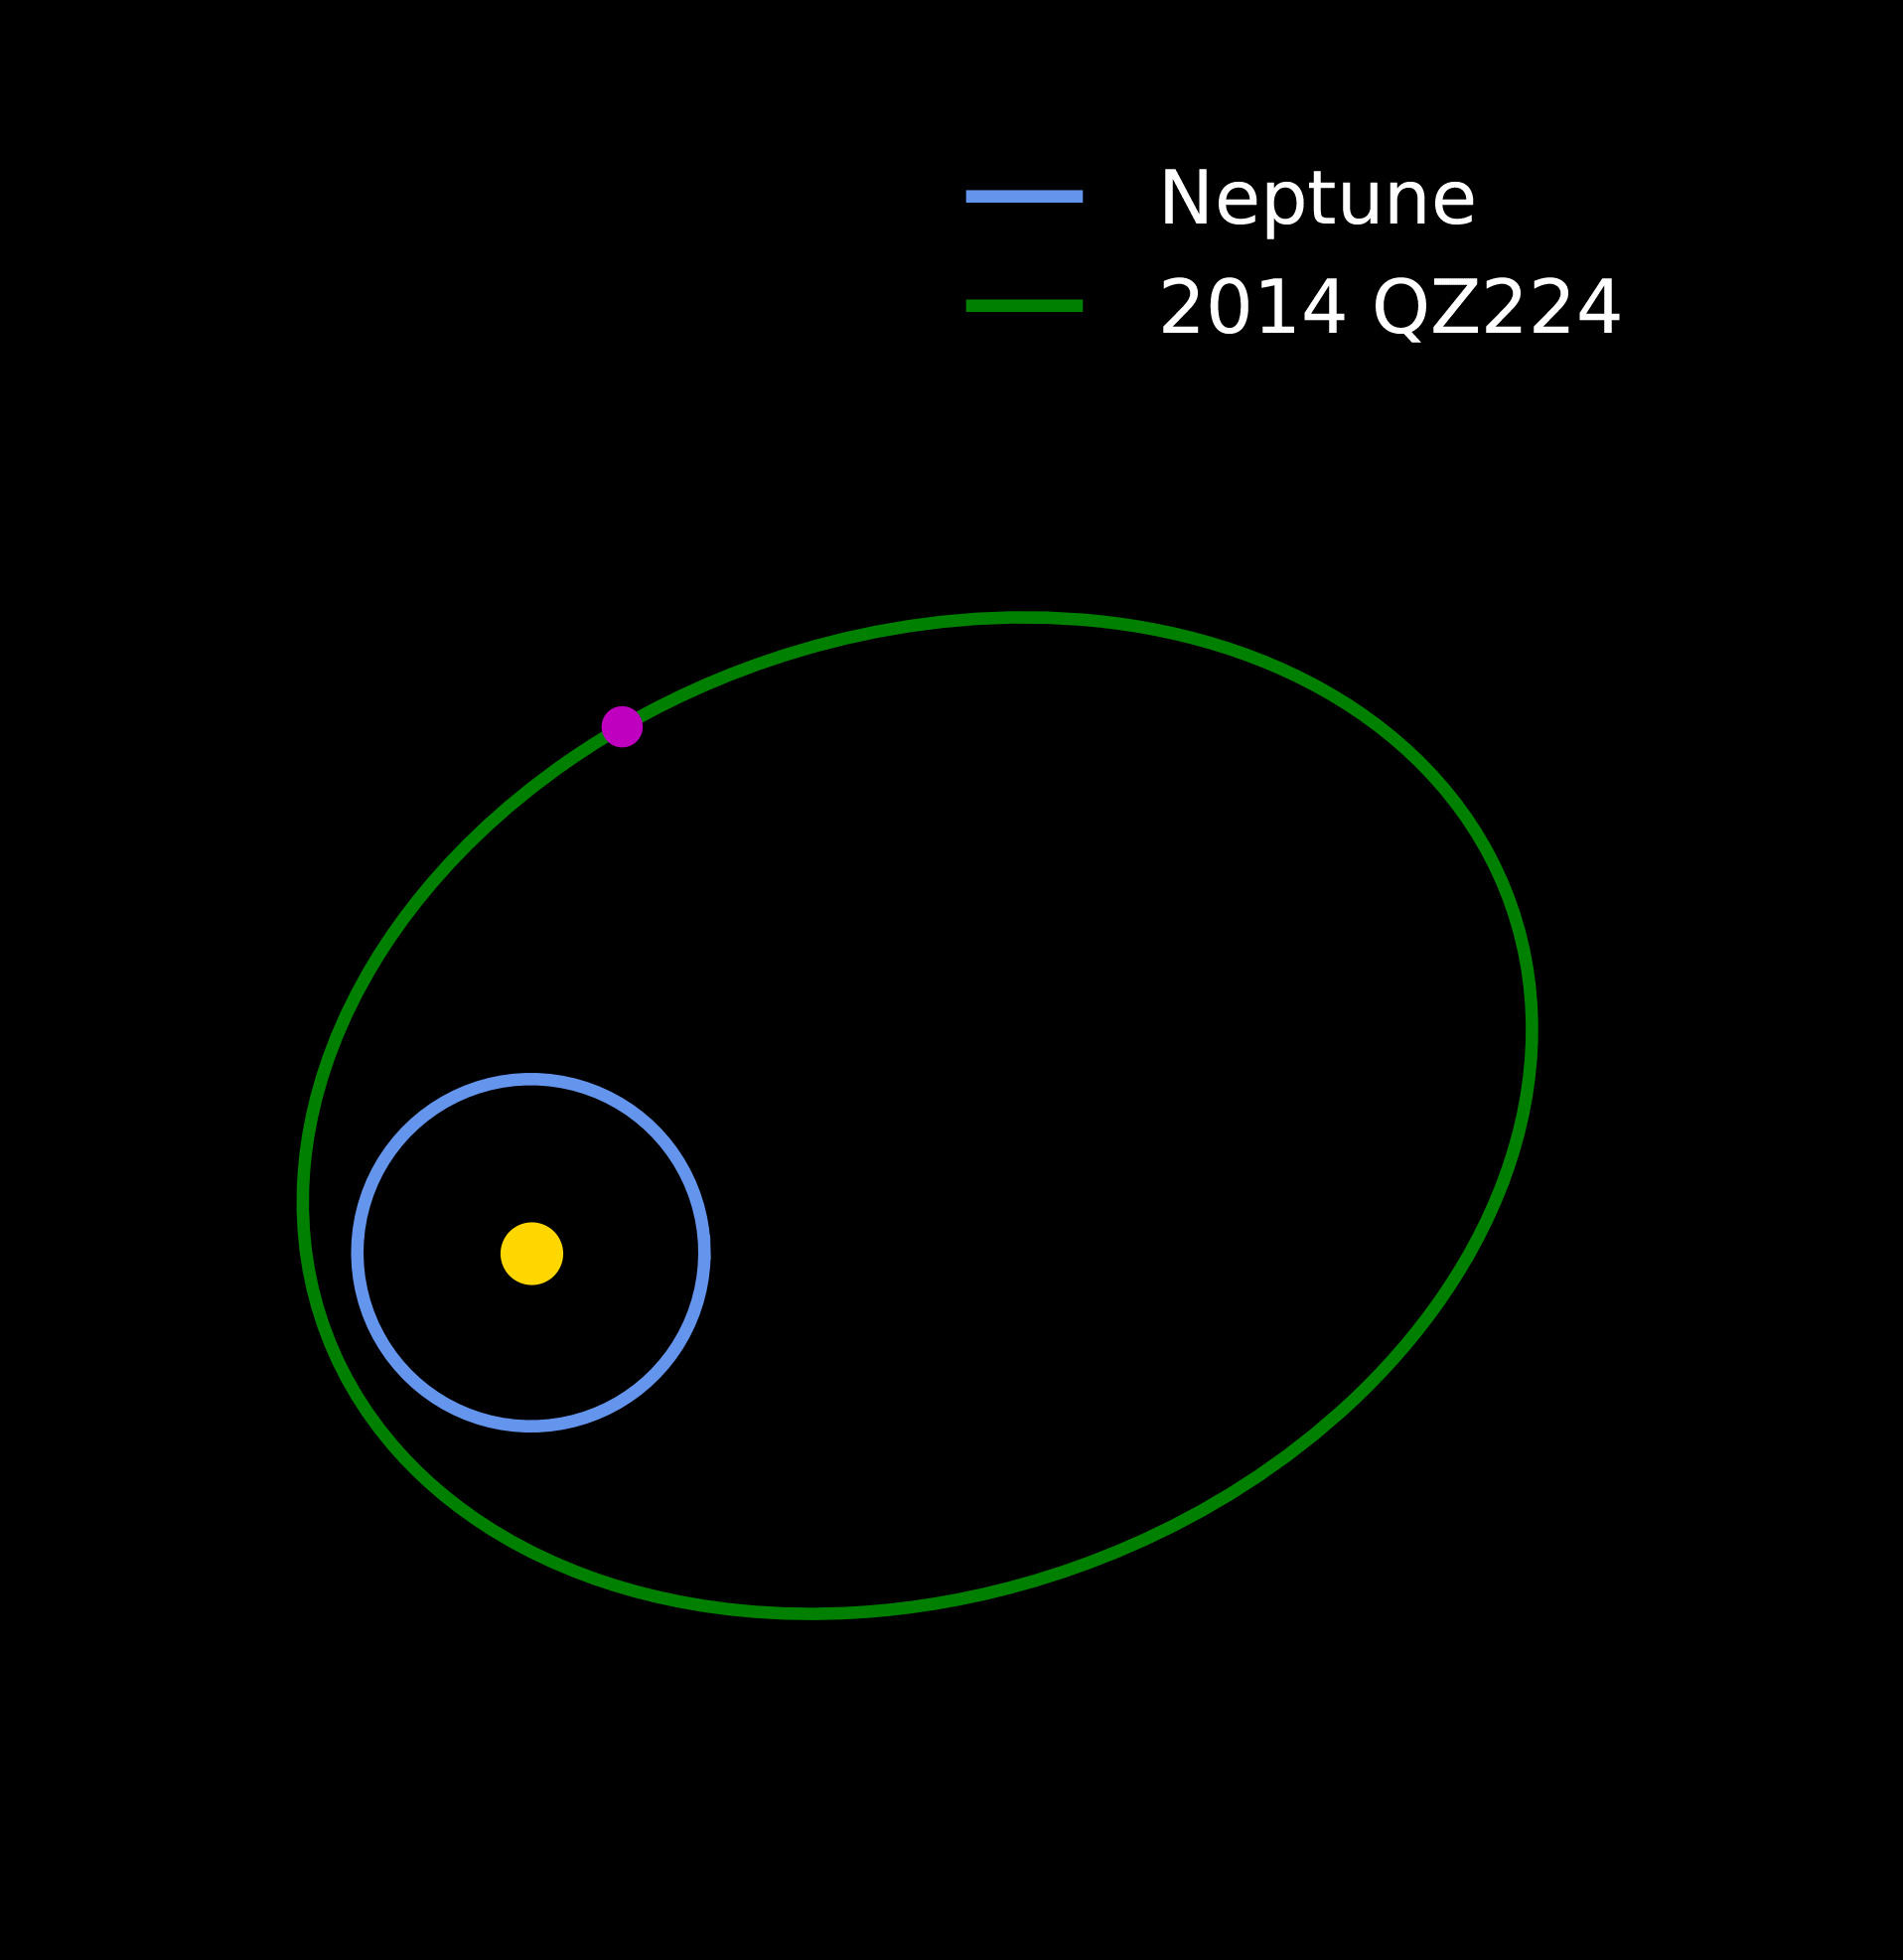 Researchers at the University of MI found a new dwarf planet